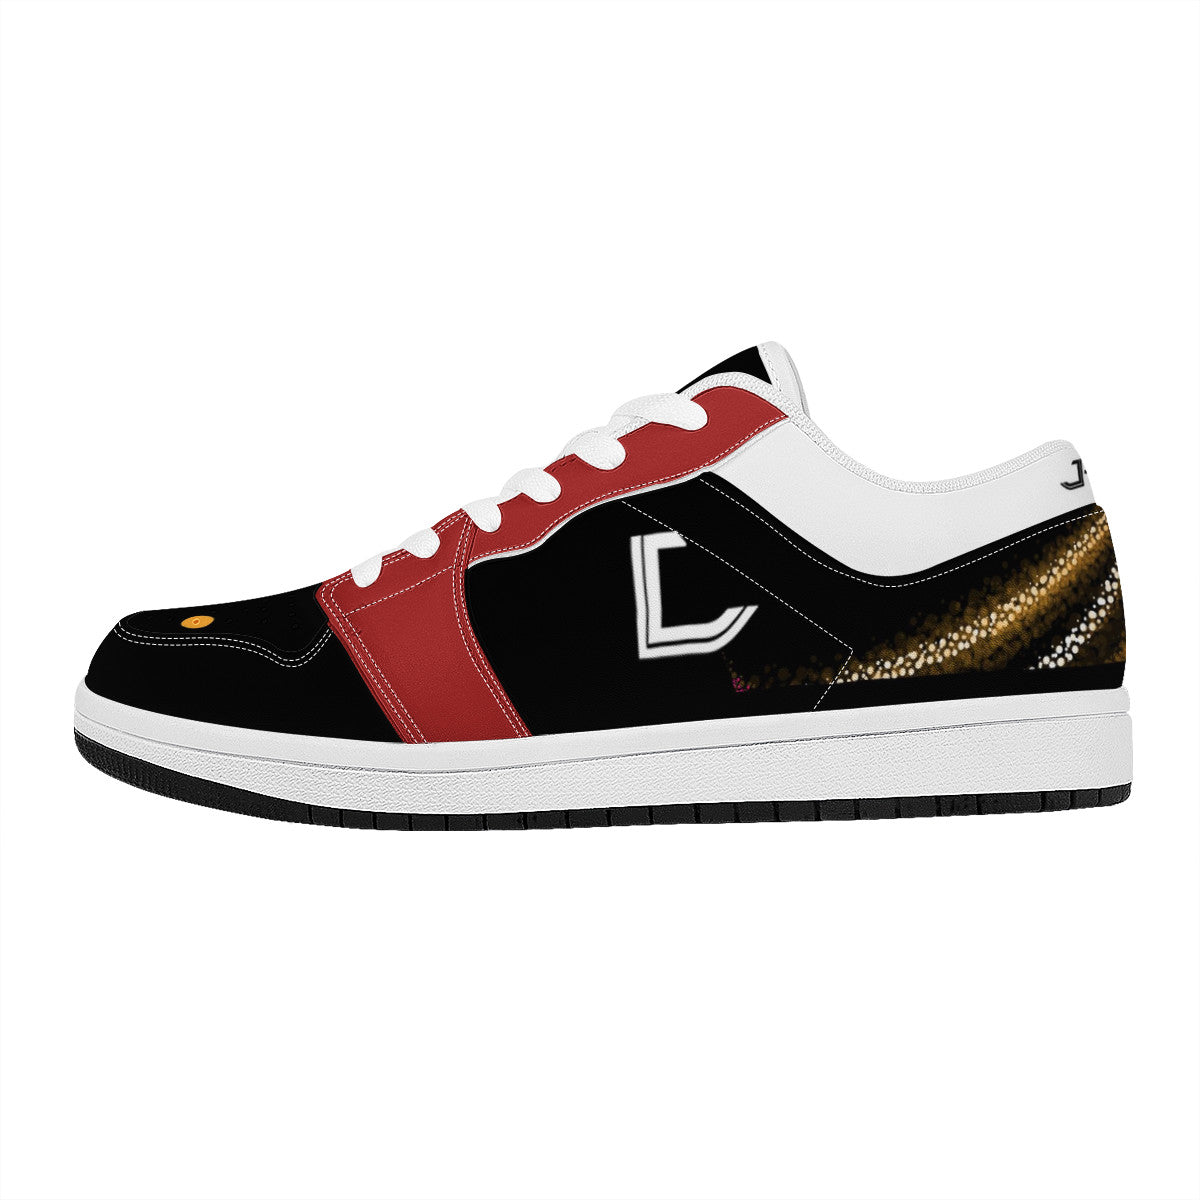 J-Mons 1 VTec Low Top Leather Sneakers